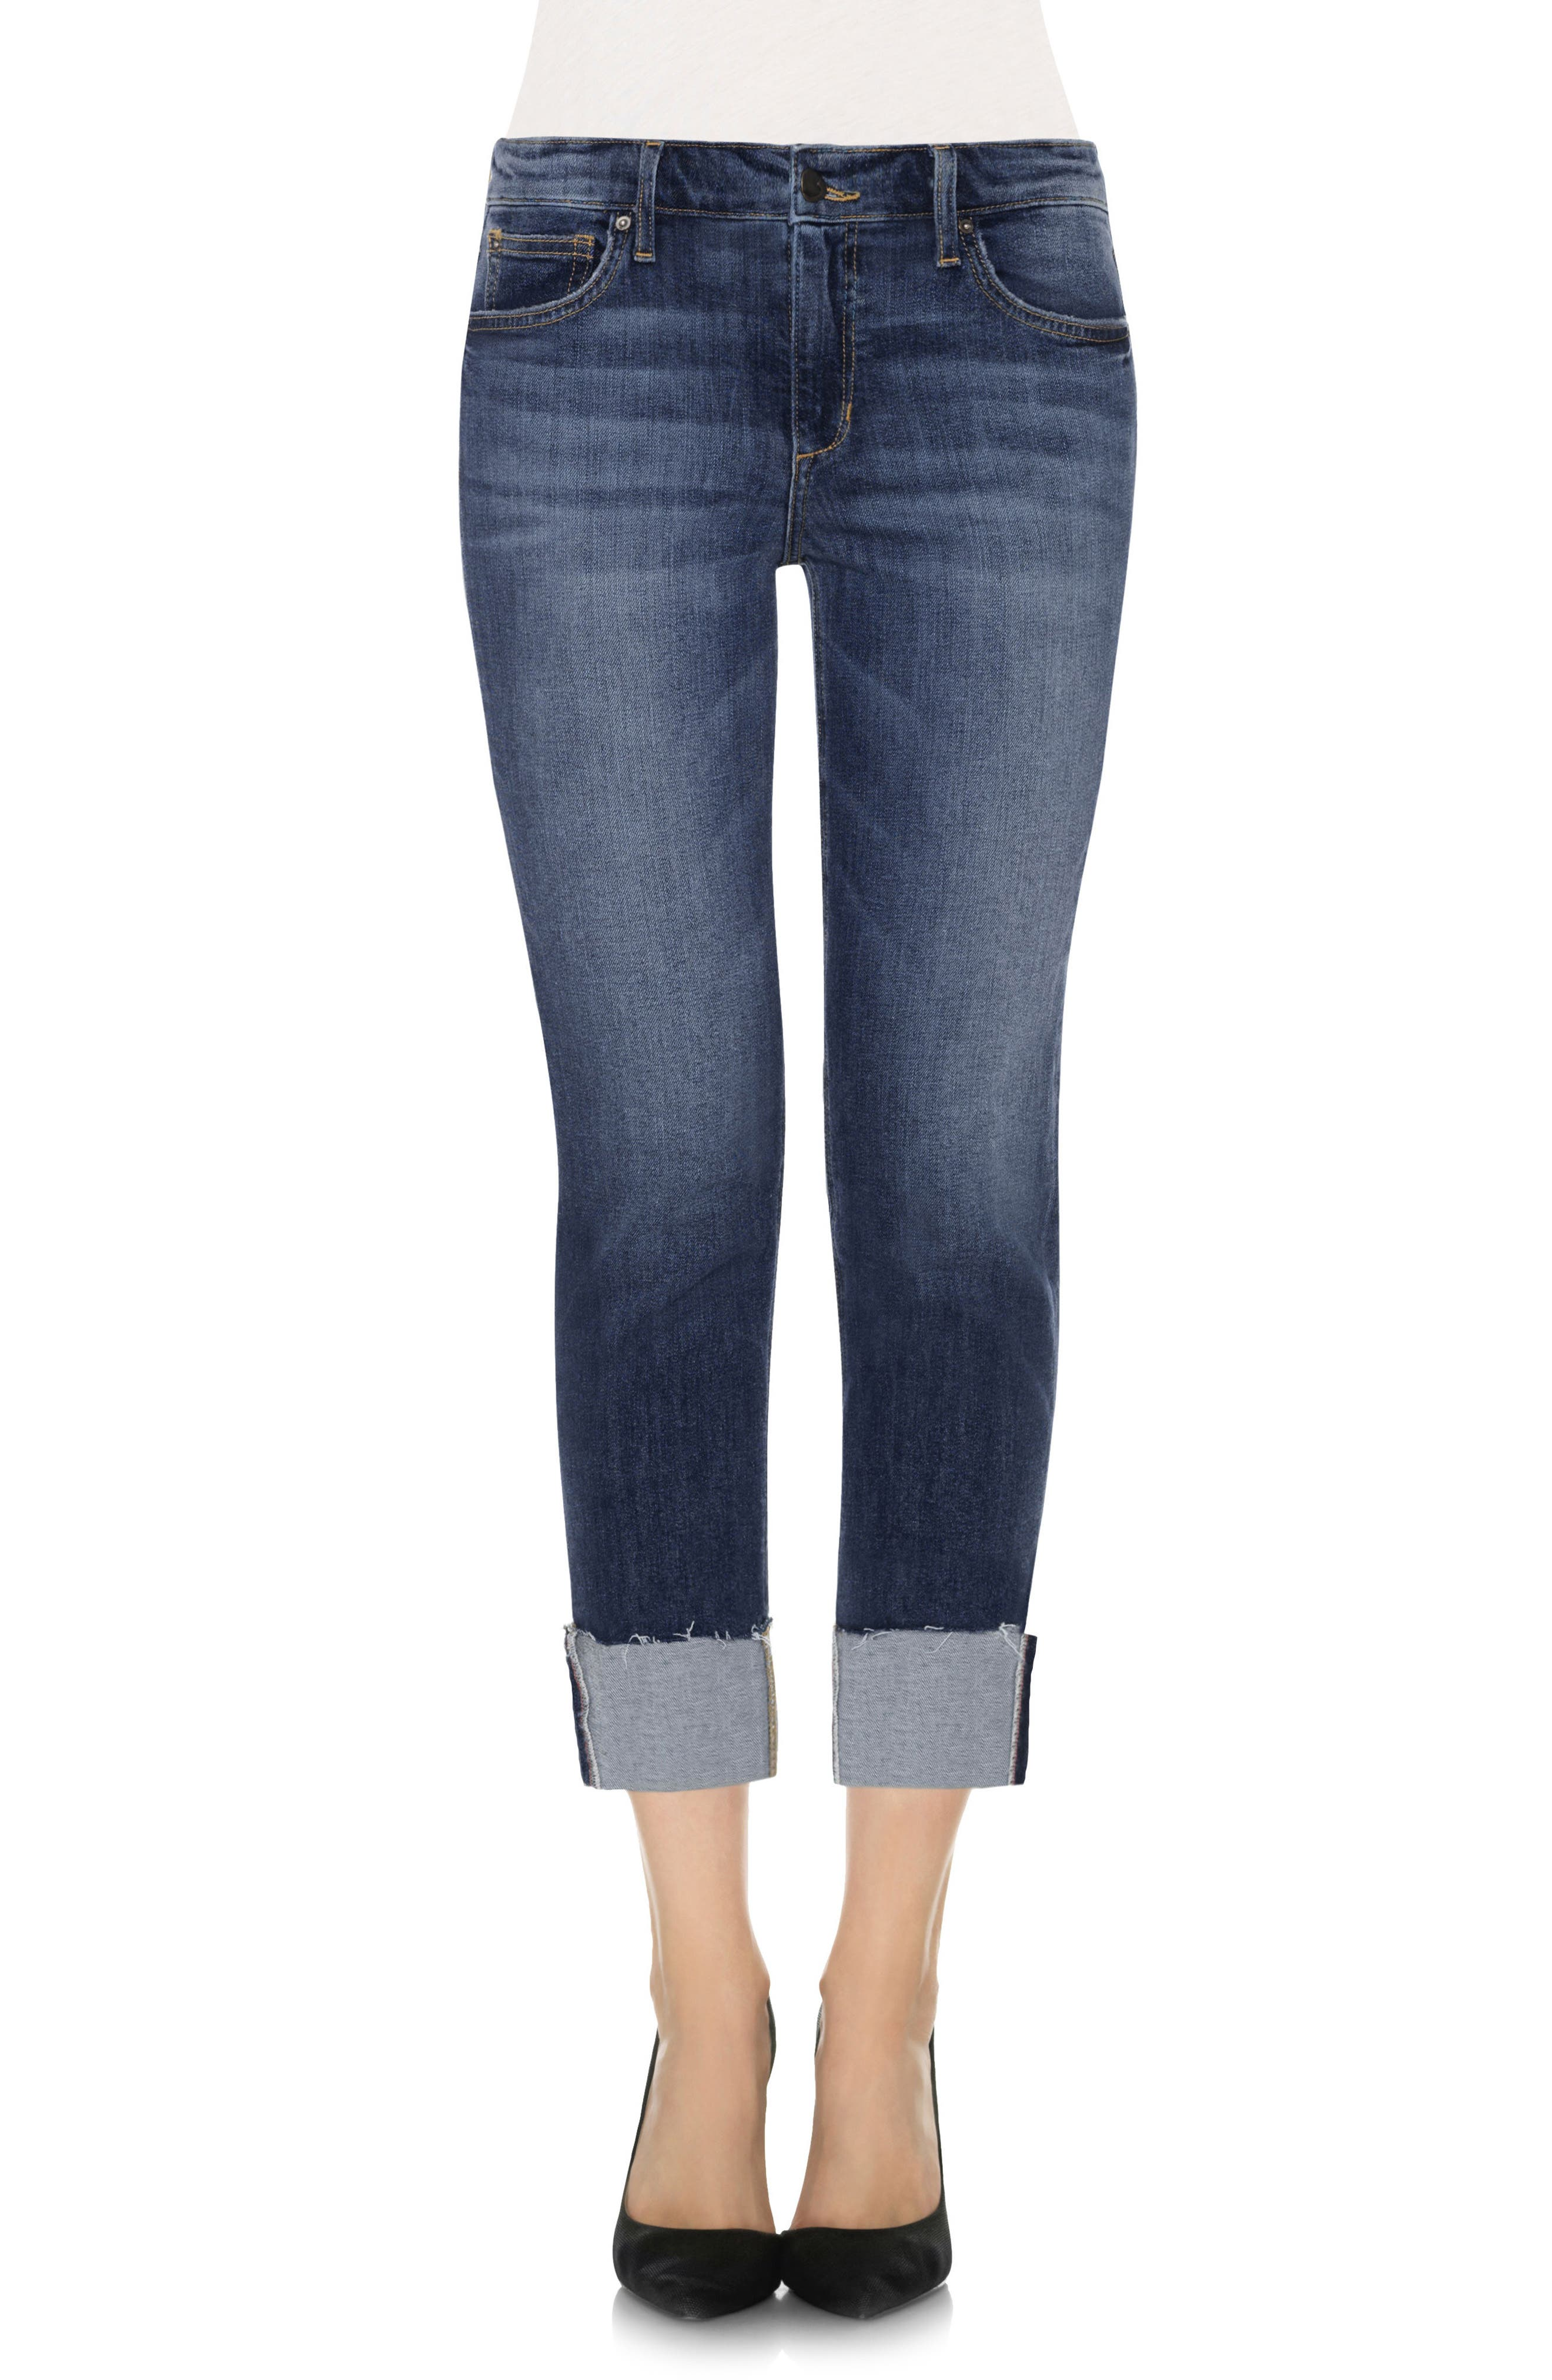 Main Image - Joes Collectors Edition - Smith Distressed Crop Boyfriend Jeans (Dionne)